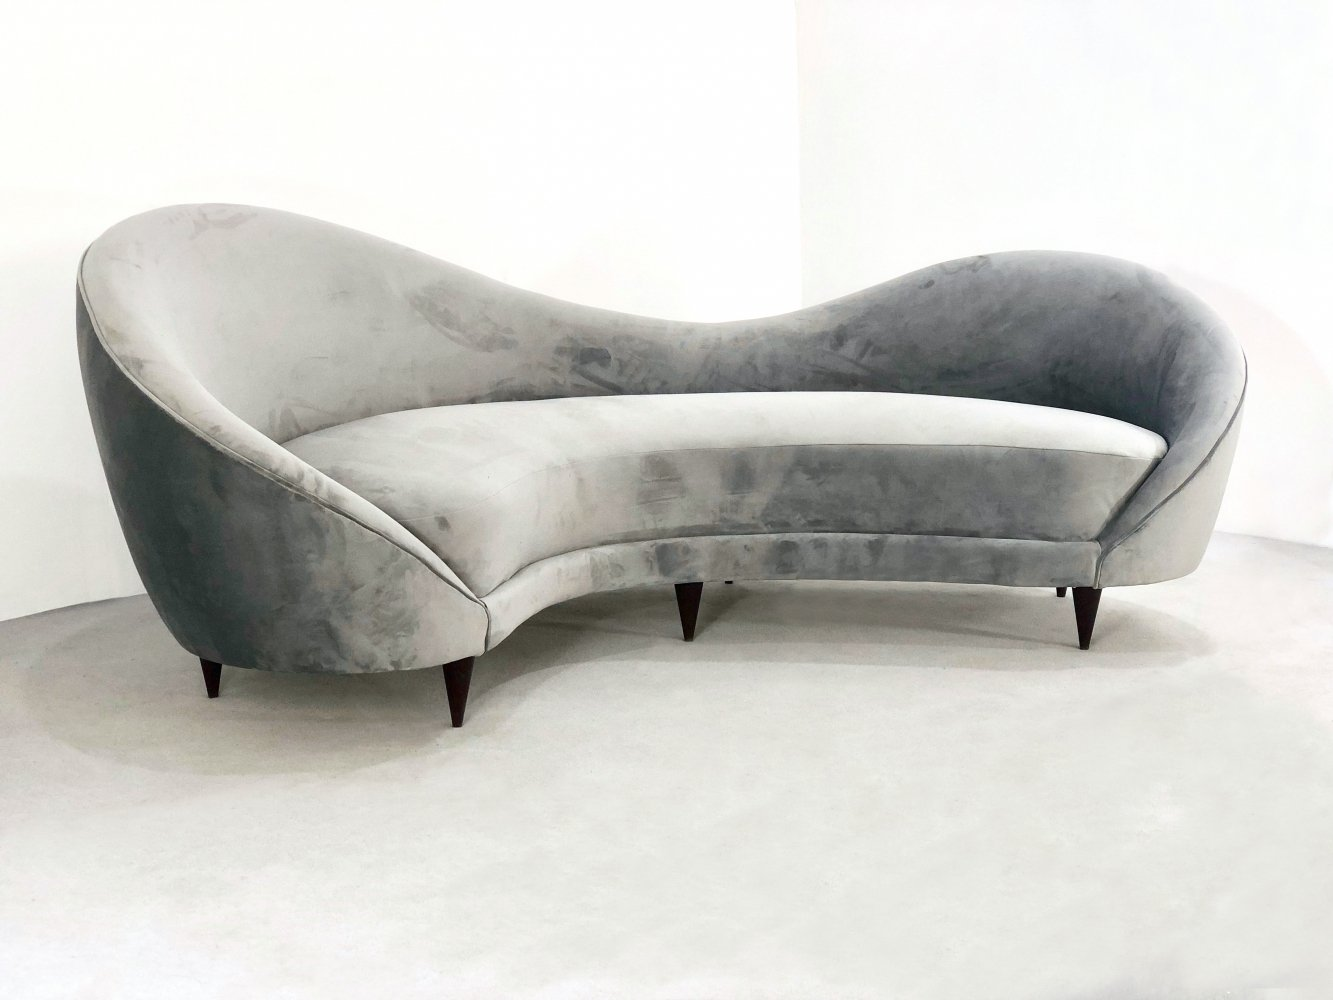 Wave sofa in gray lined velvet, 1950s